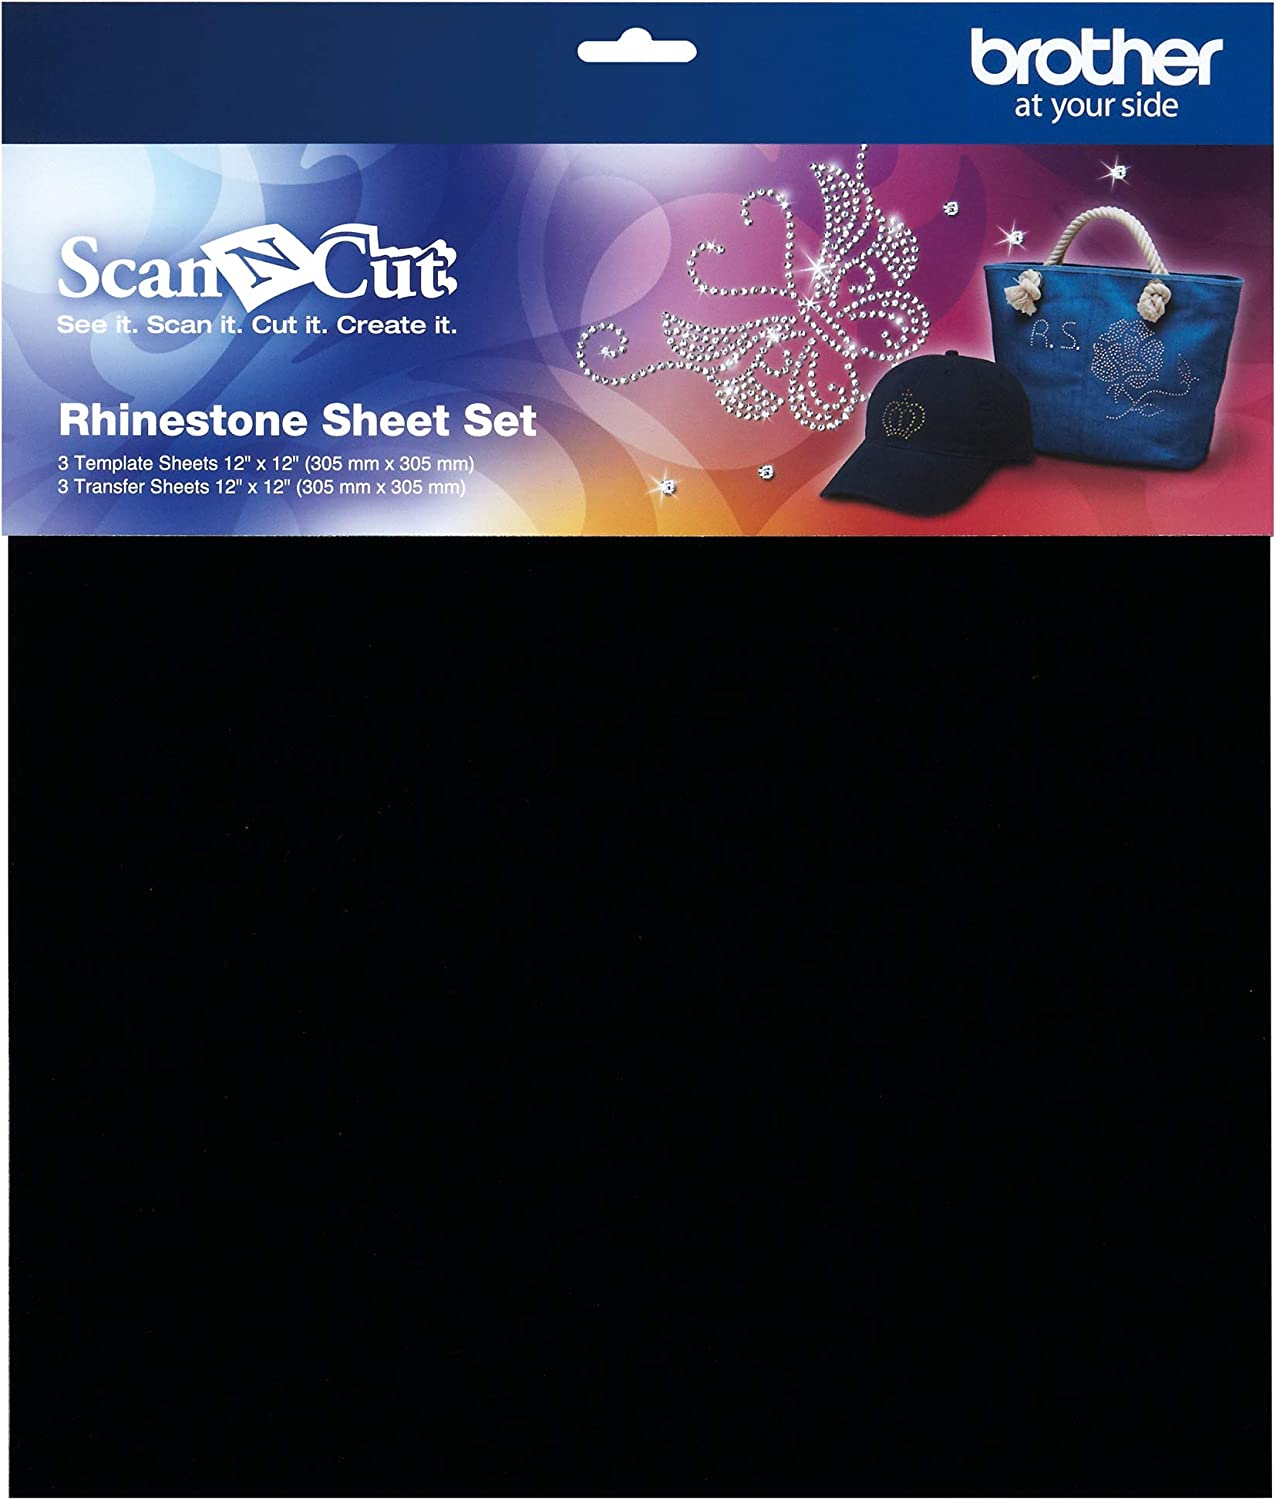 Brother ScanNCut Rhinestone Template and Transfer Sheet Set CARSSH1, 6-Piece Accessories, 3 Each 12